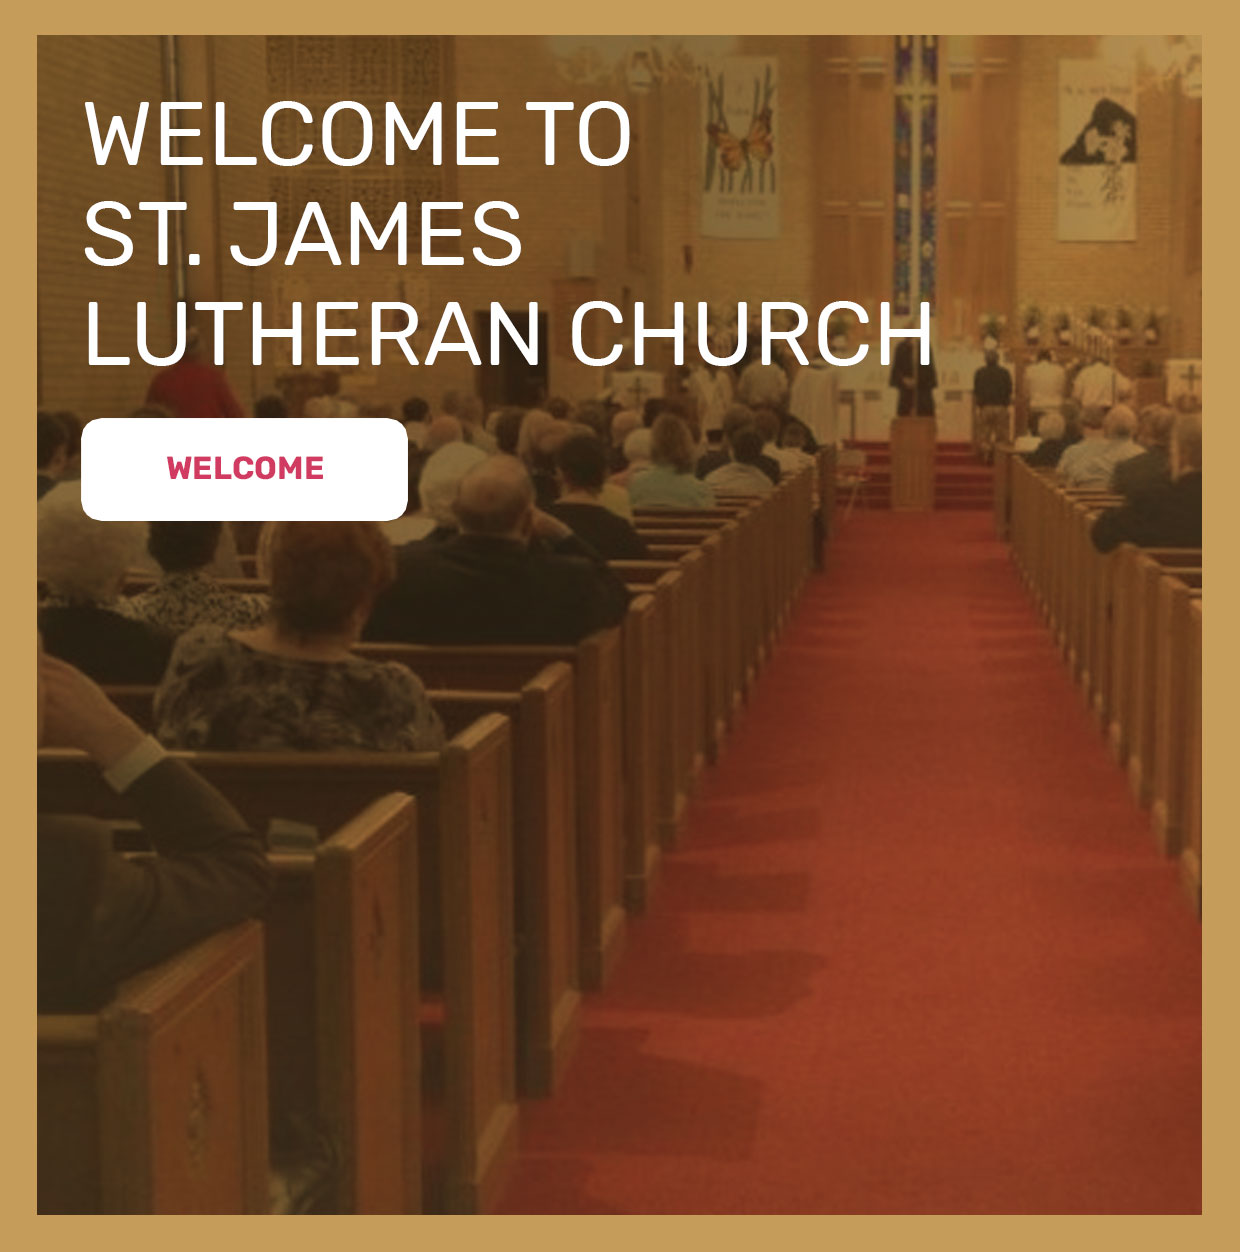 Welcome to St. James Lutheran Church